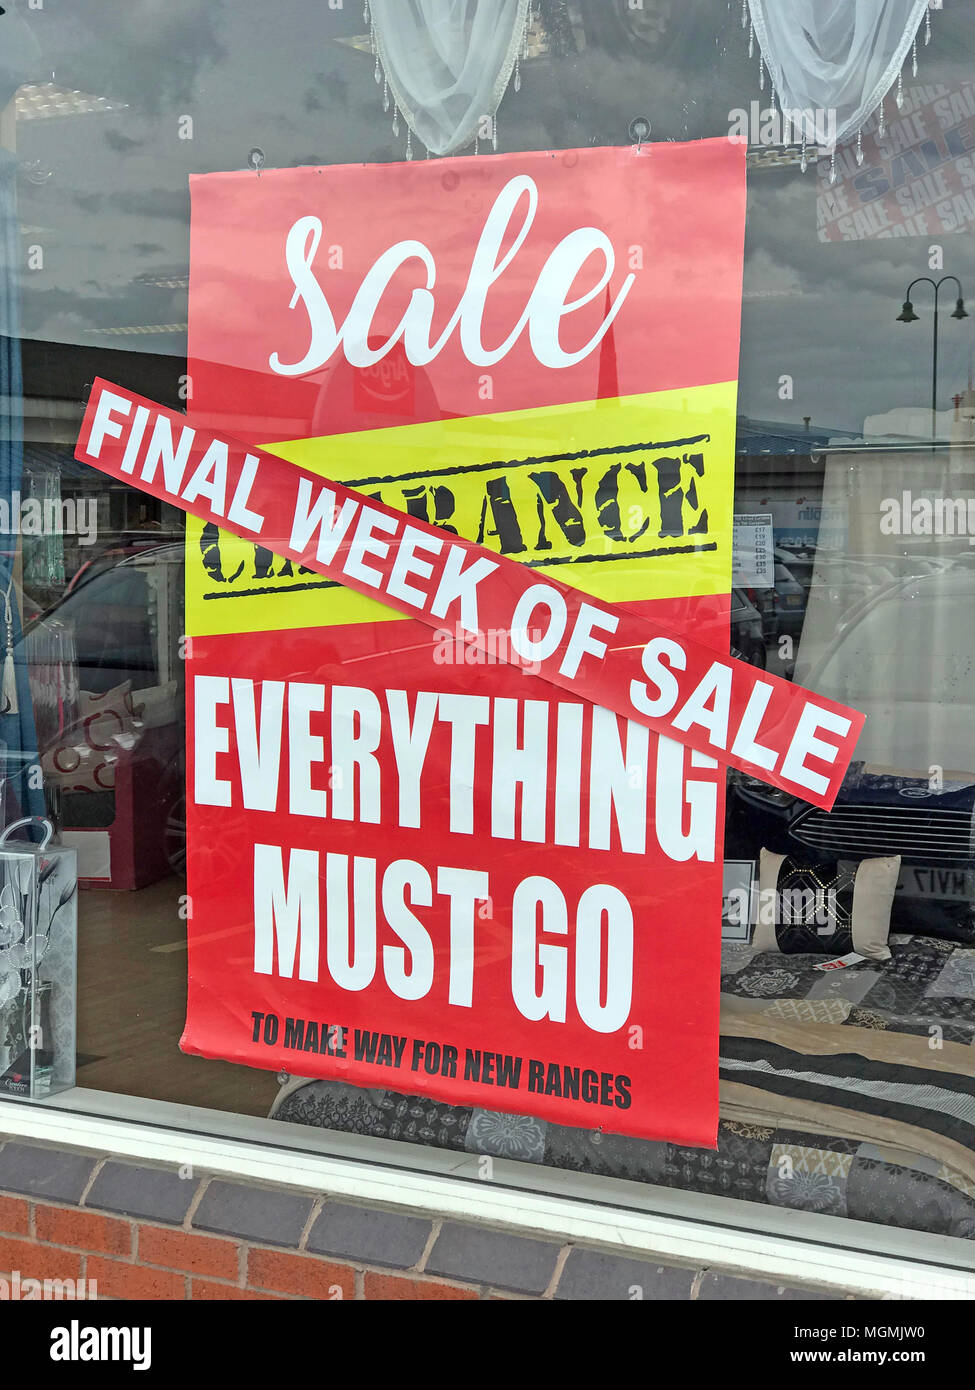 GoTonySmith,High Street,high,street,retail,store,shop,clearance,sale,Final,Clearance Sale,in,Window,bargain,Cheshire,England,retailing,problems,difficulty,difficulties,stores,struggling,buy,Clear,advert,soft furnishings,low demand,recession,footfall,low,poor,results,final week,trading,difficult trading,internet competition,competition,glass,reflection,red